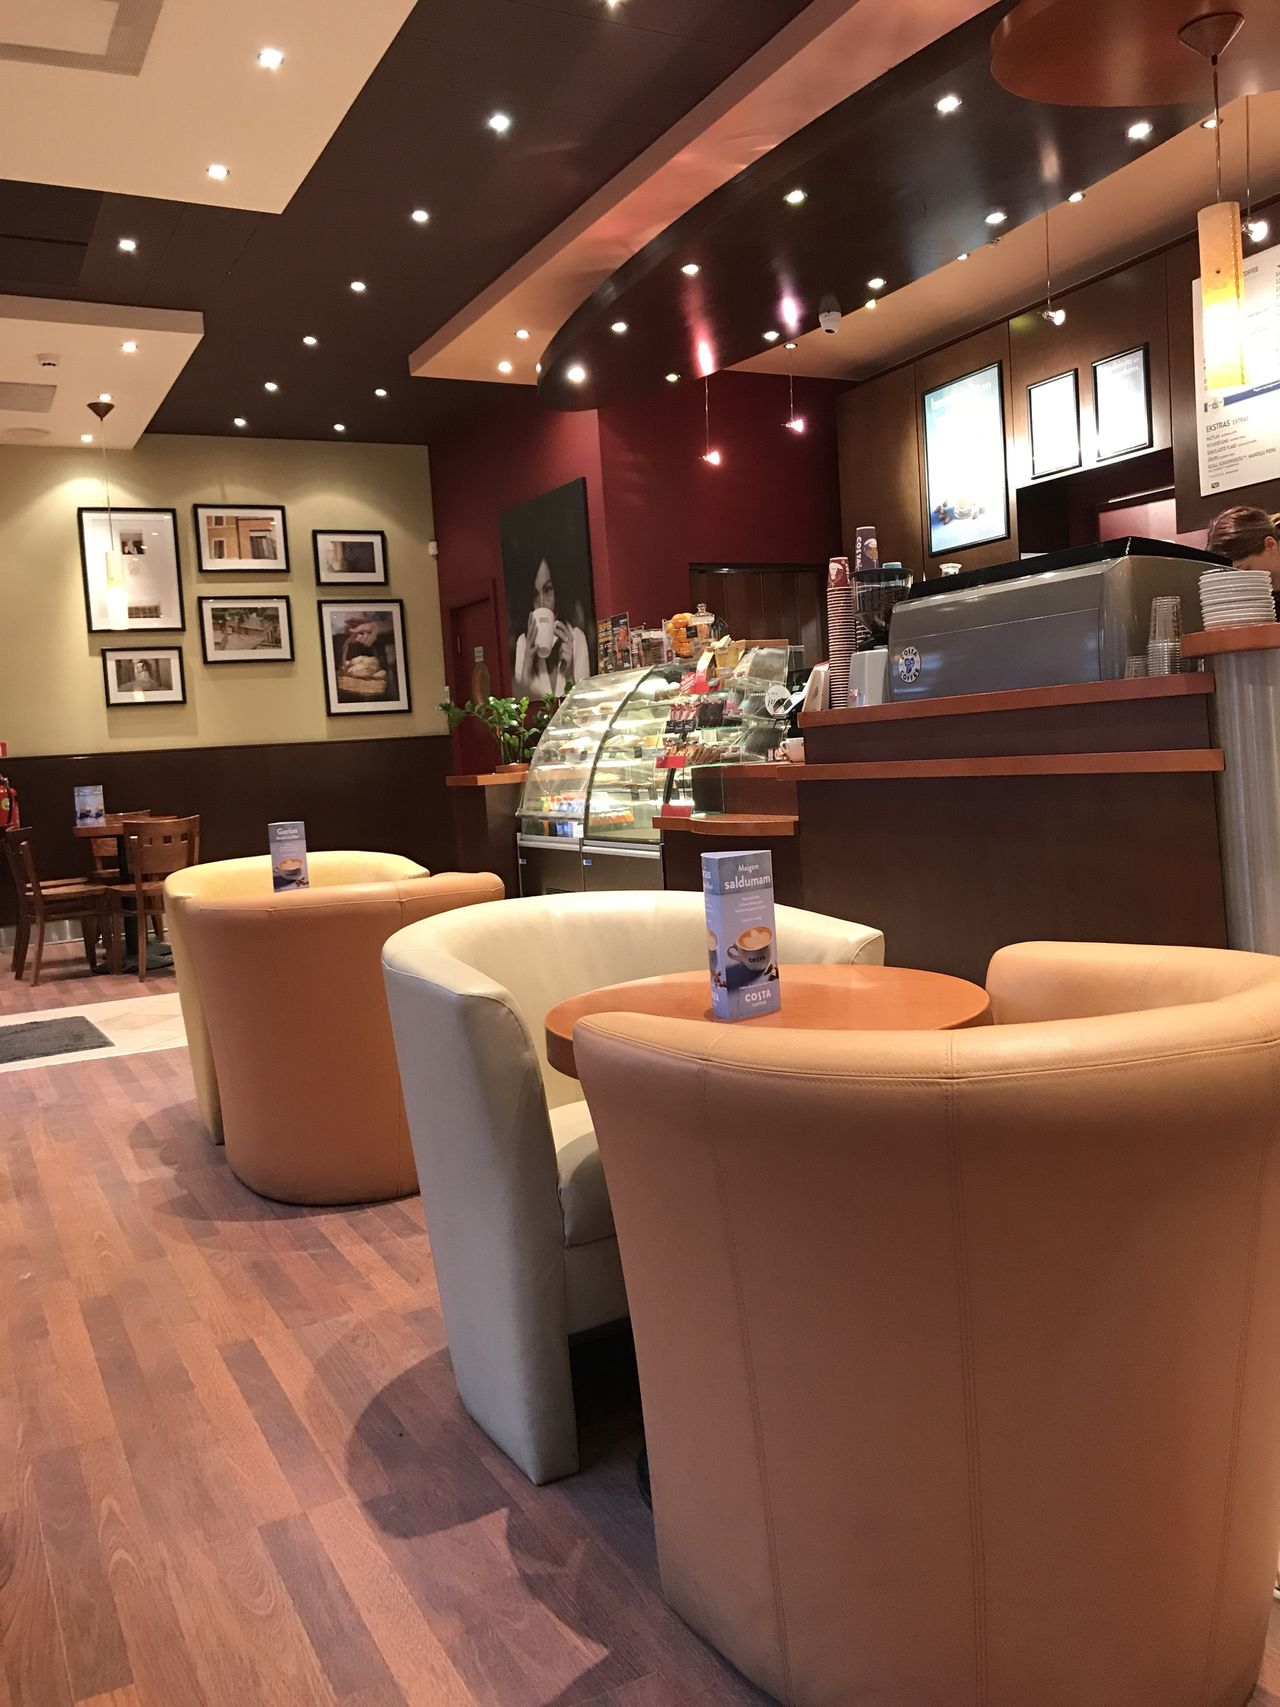 A photo of Costa Coffee, Centra rajons